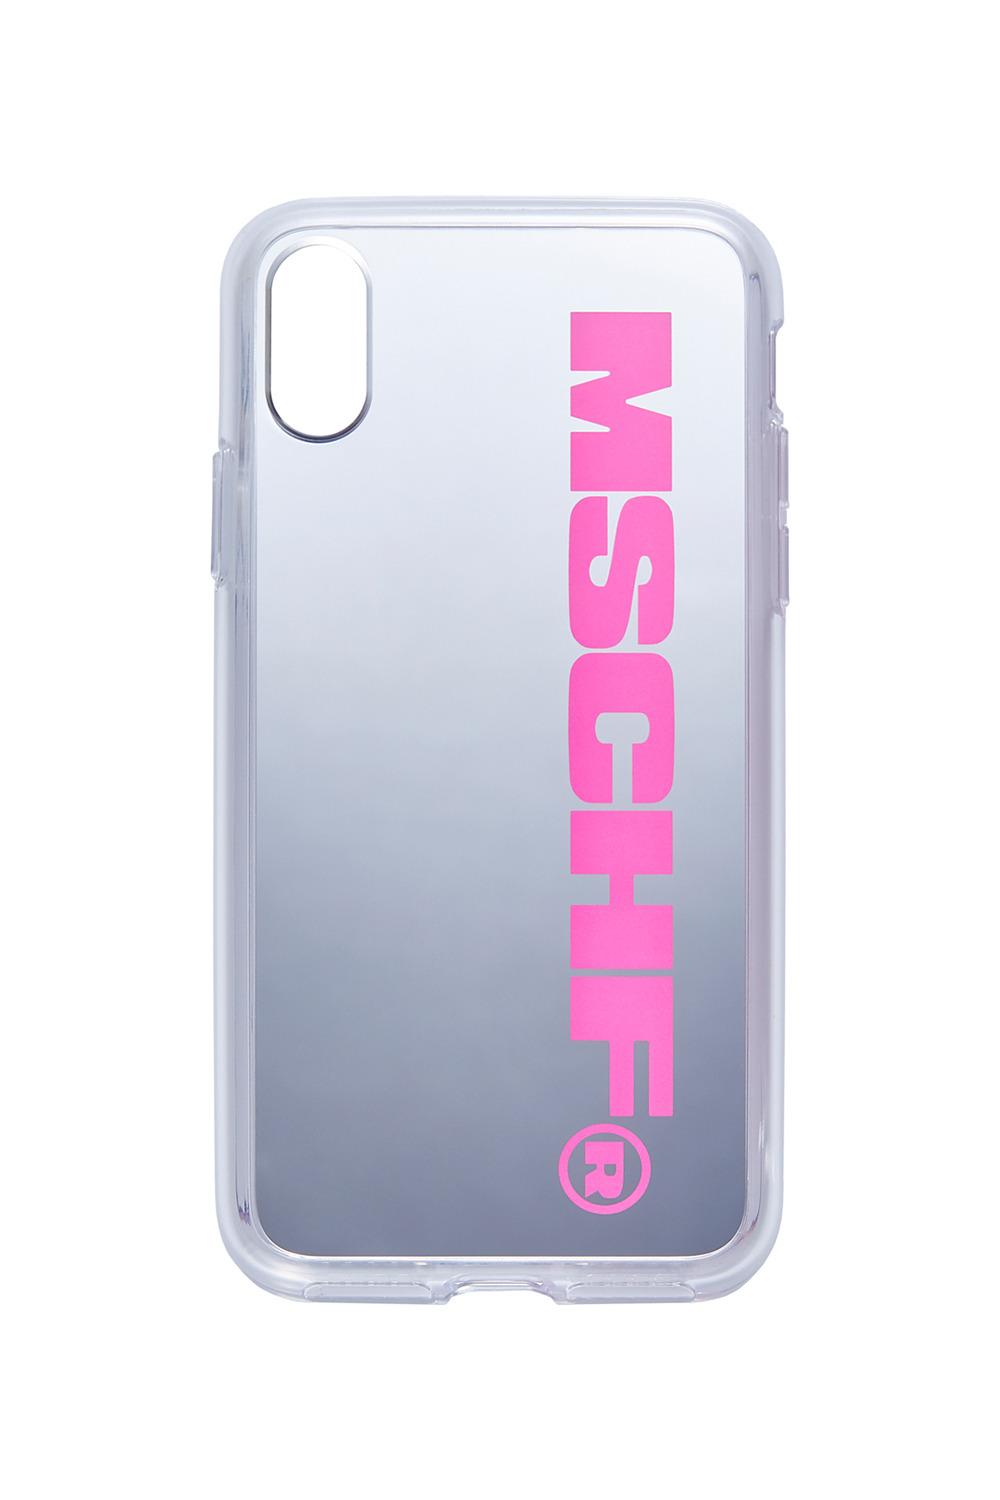 MSCHF_IPHONE MIRROR CASE_NEON PINK